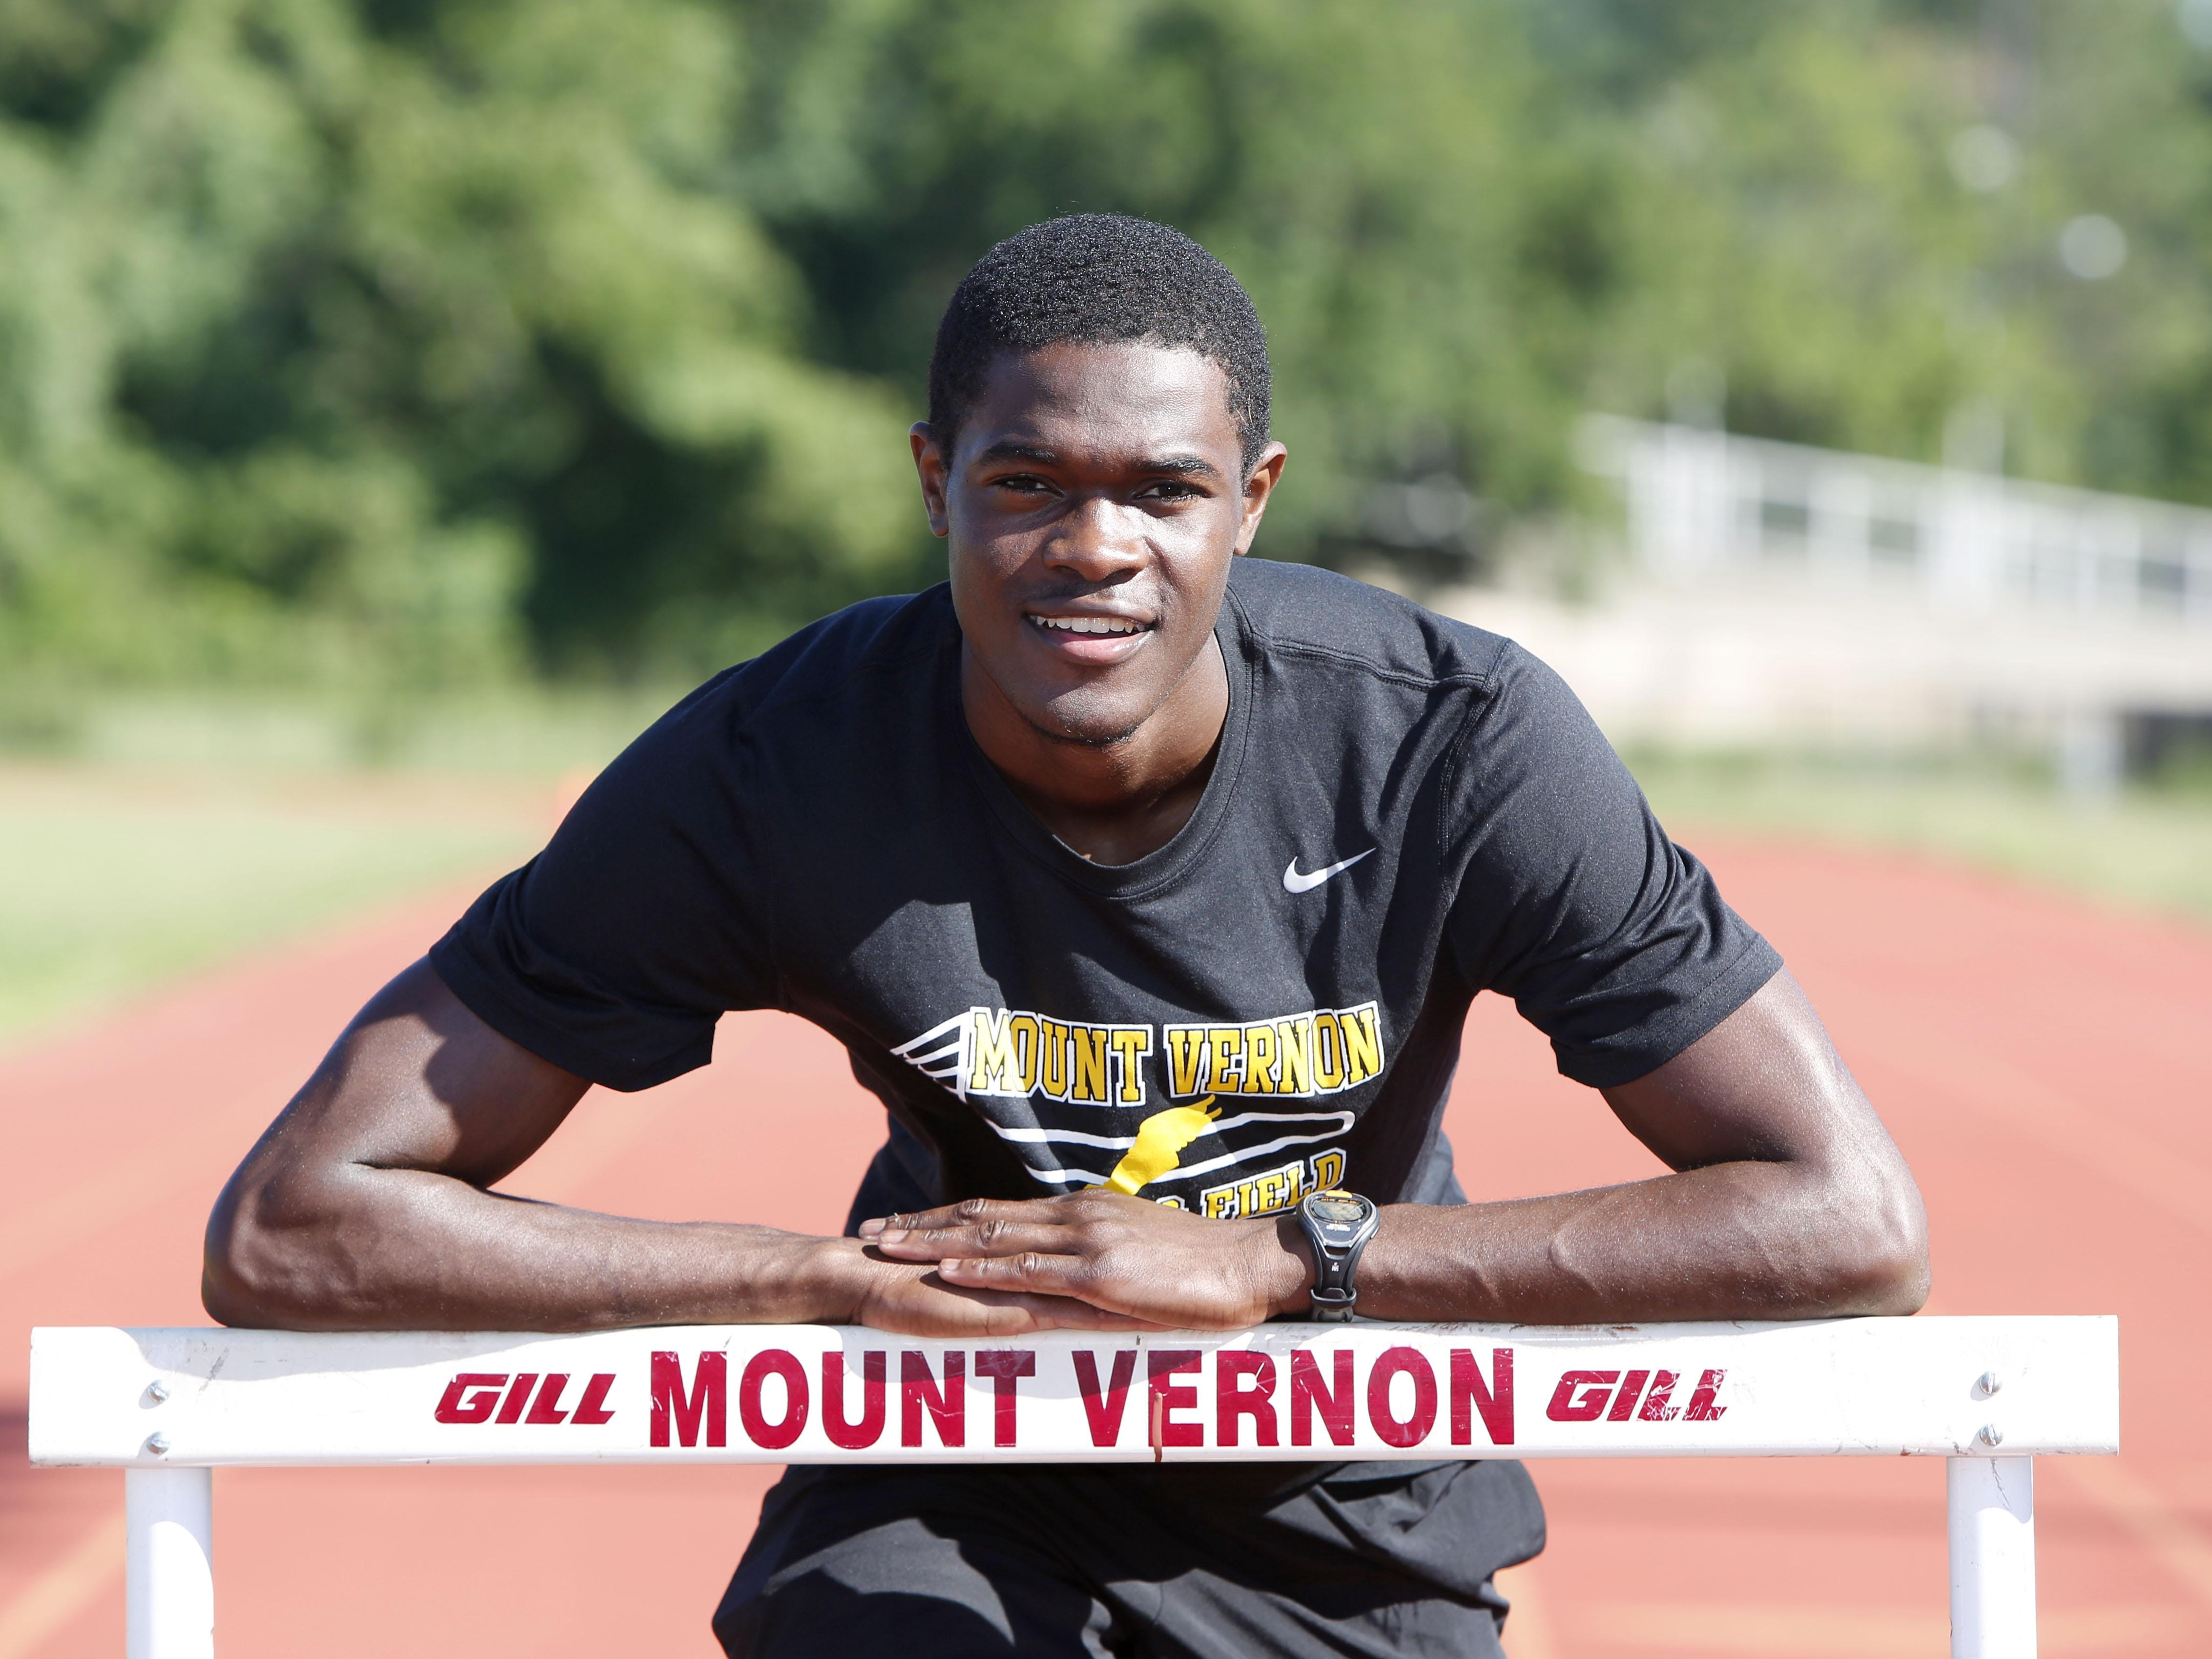 Mount Vernon High School's Rai Benjamin, the Westchester/Putnam boys track athlete of the spring, is photographed June 24, 2015 at the high school's track.